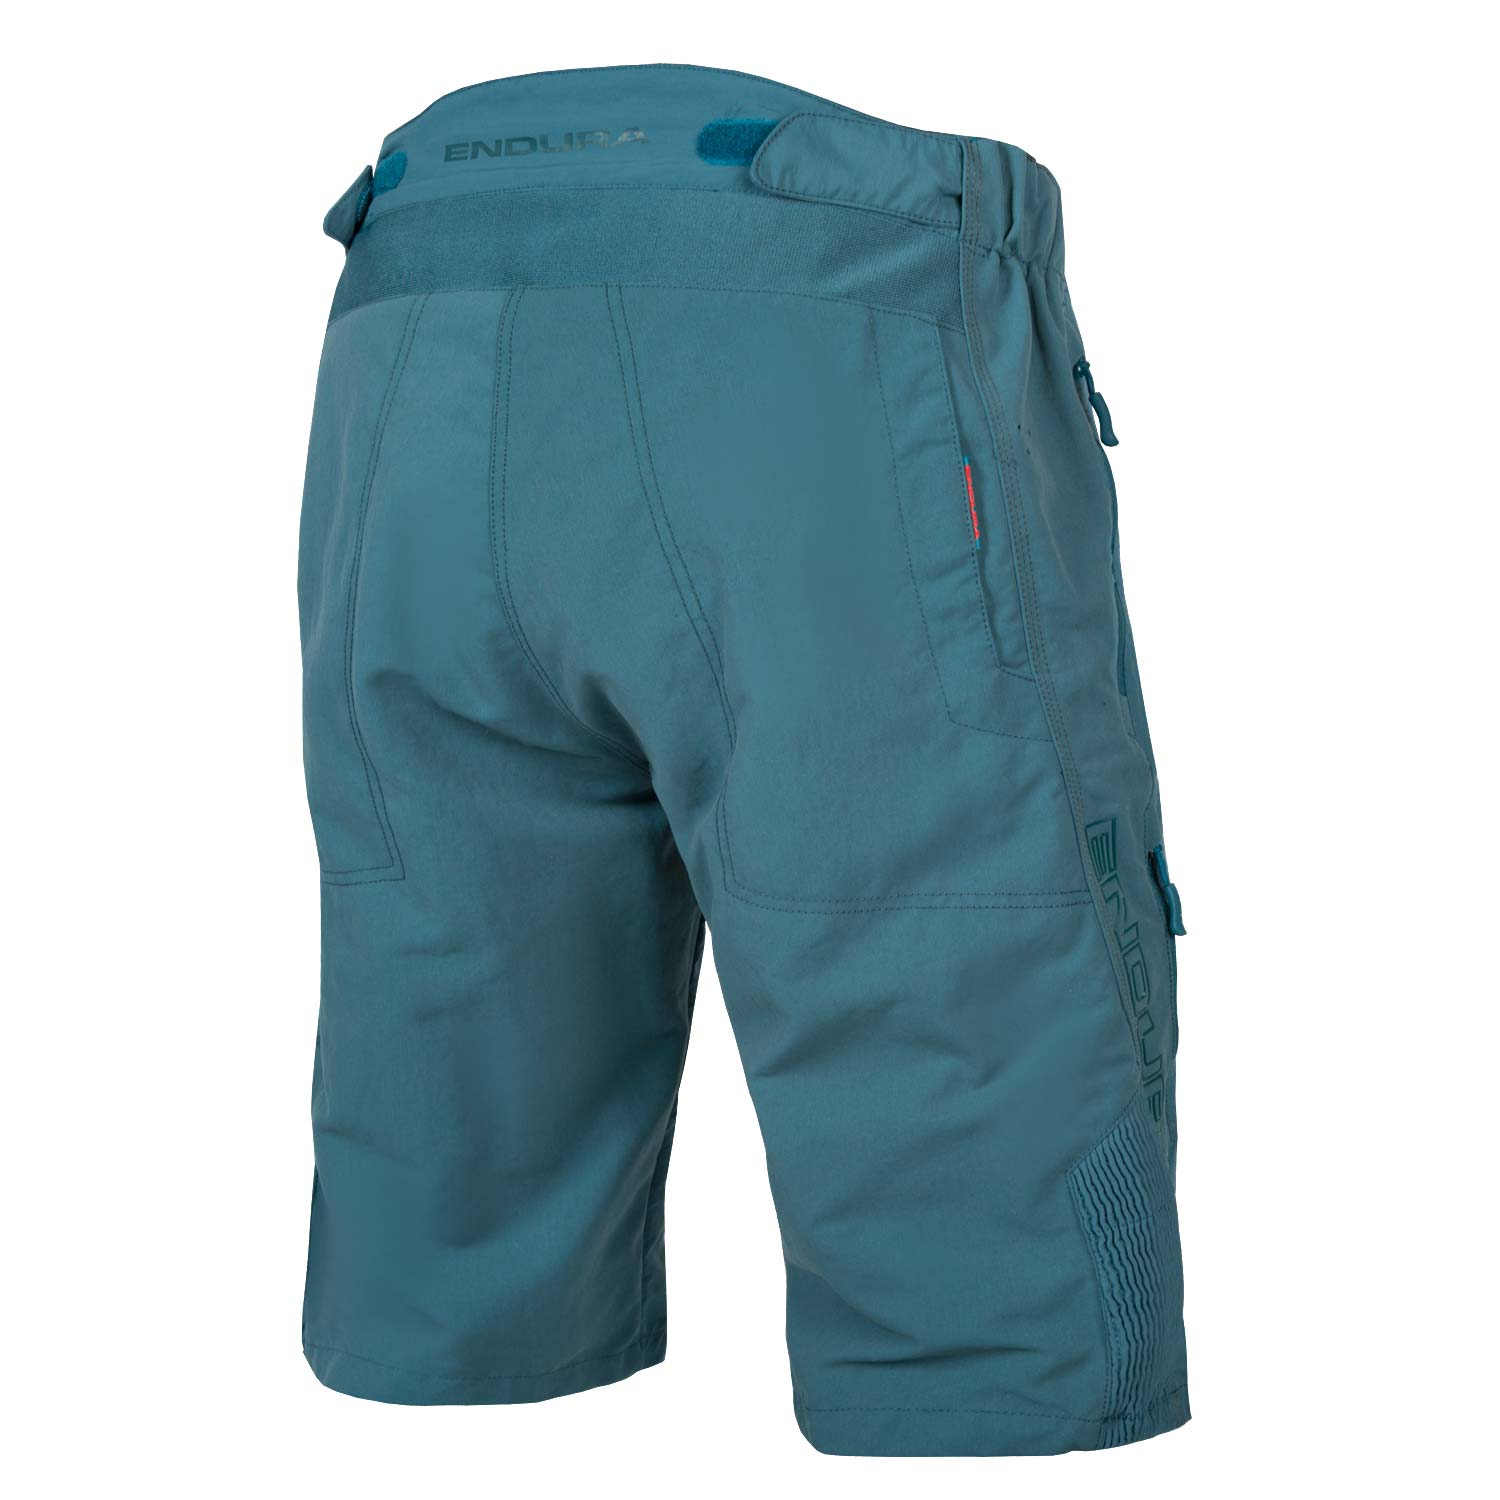 SingleTrack Short with Liner back